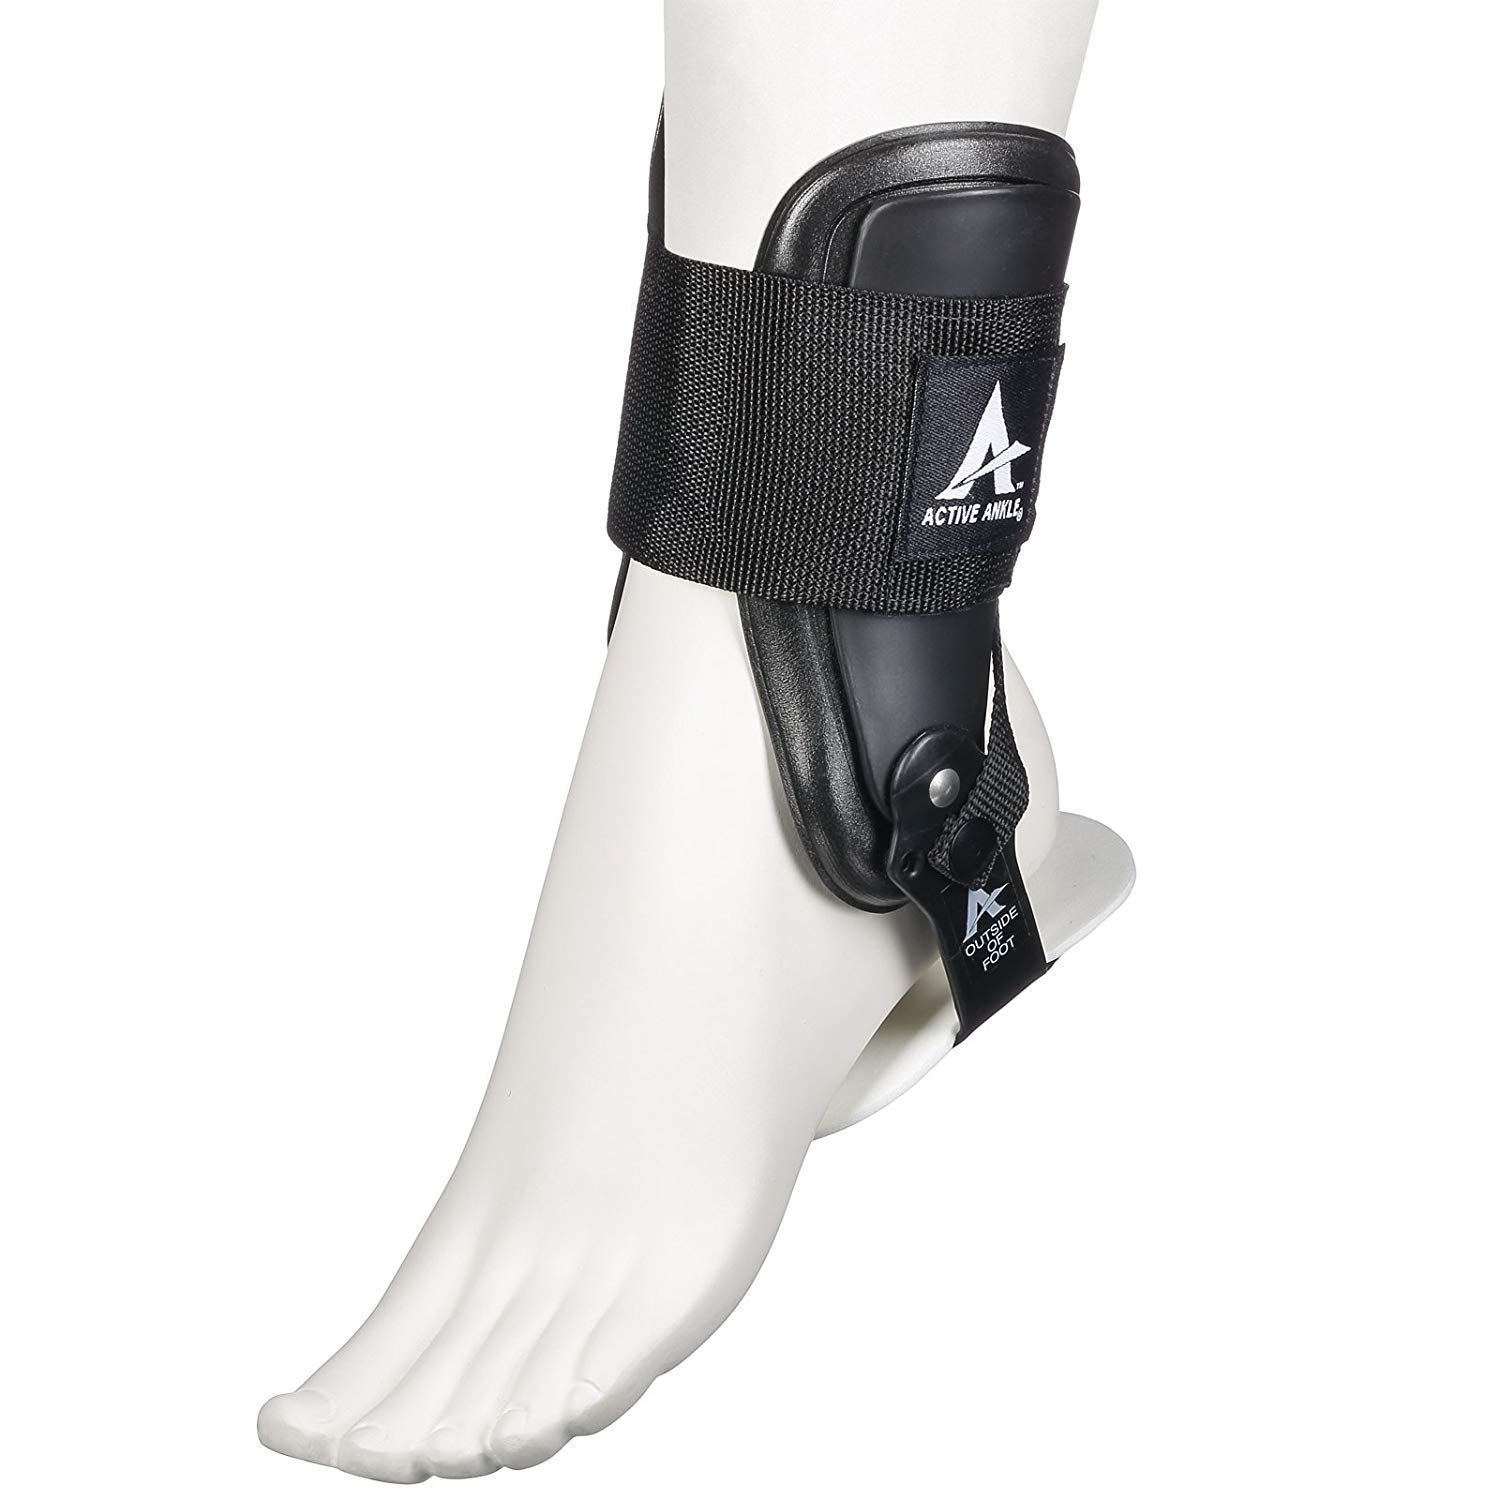 Ankle Brace For Volleyball Ankle Braces Volleyball Ankle Braces Ankle